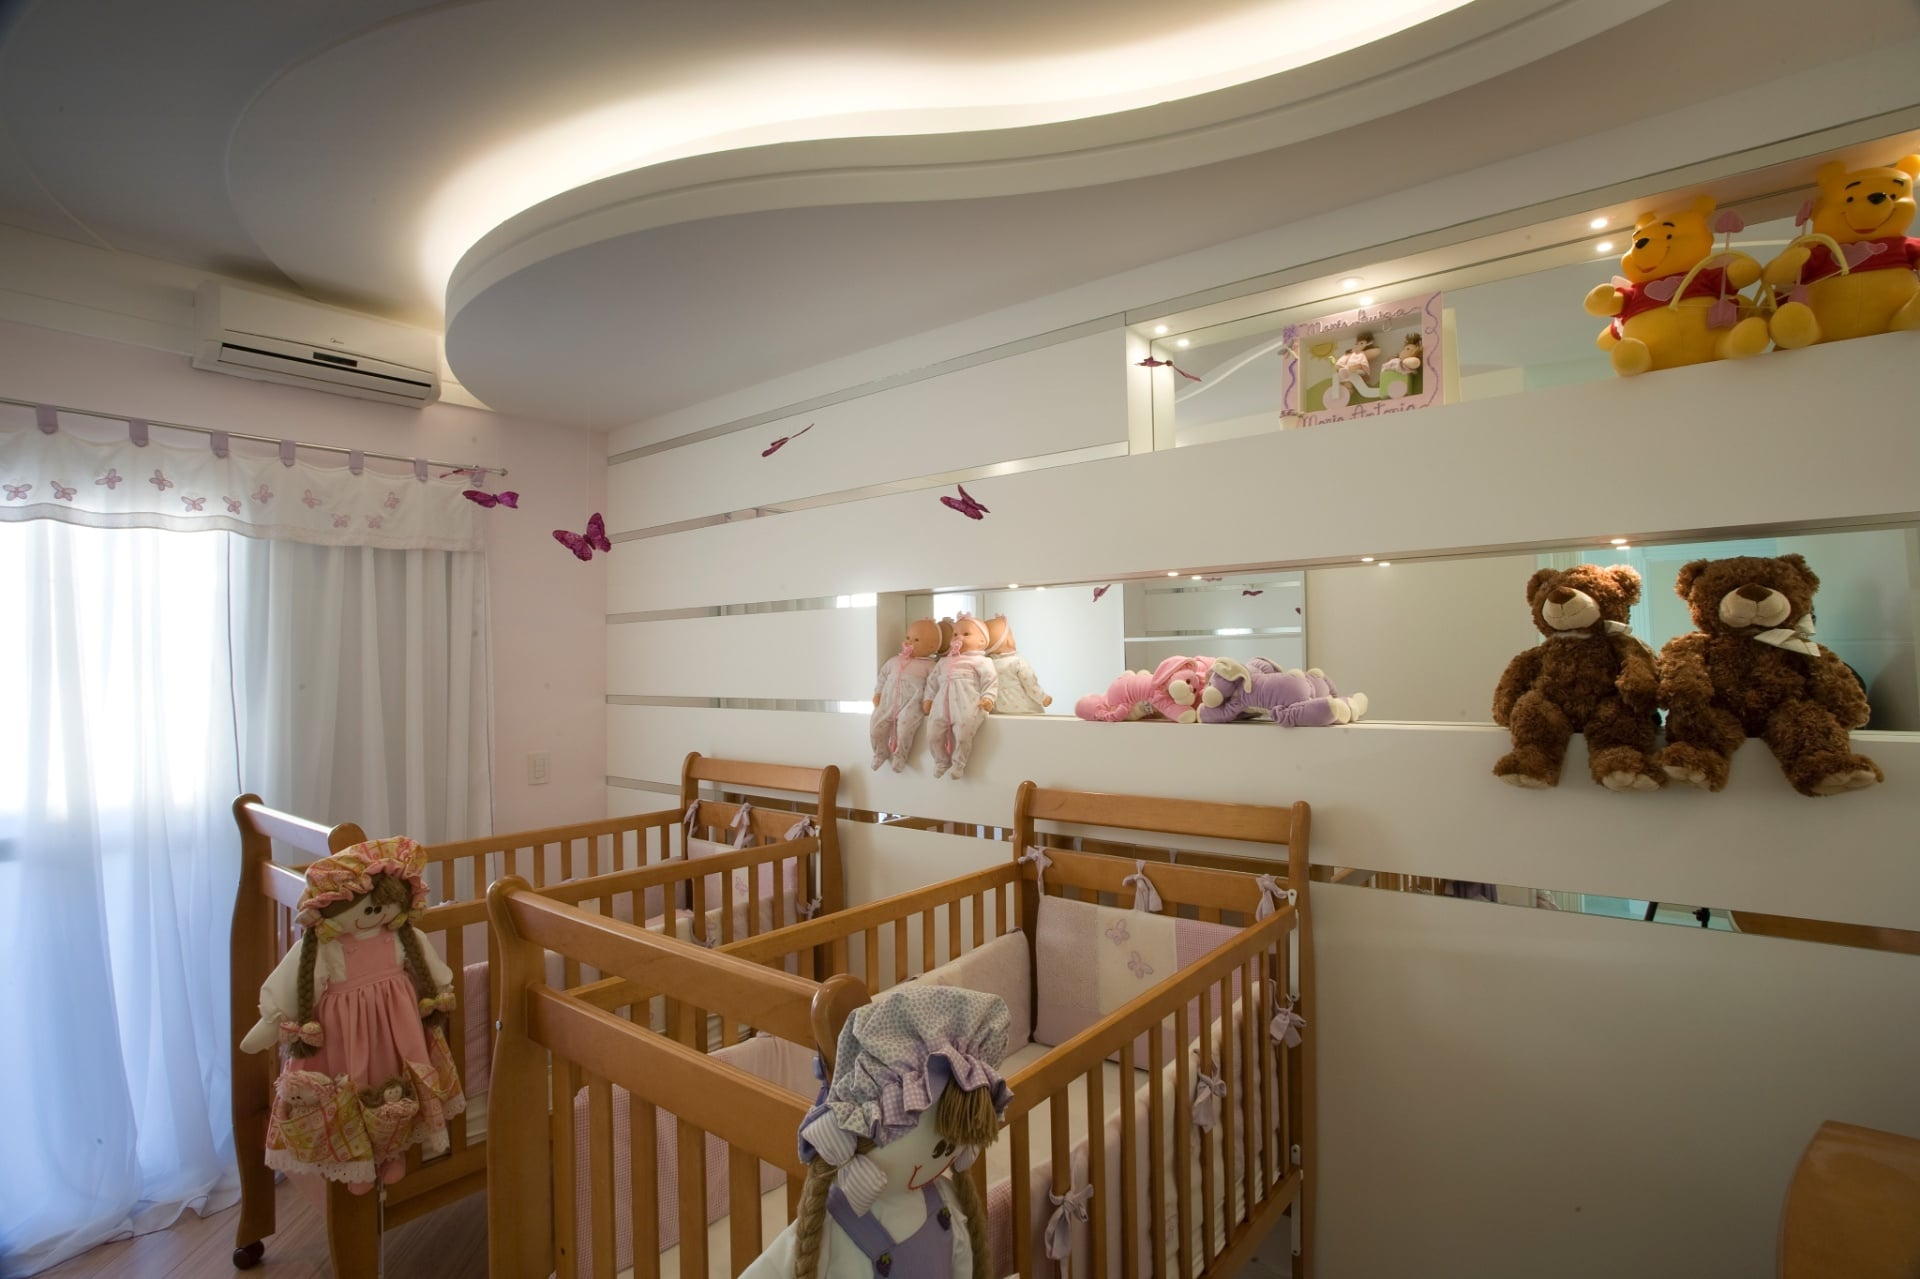 ambiente-decorado-quarto-infantil